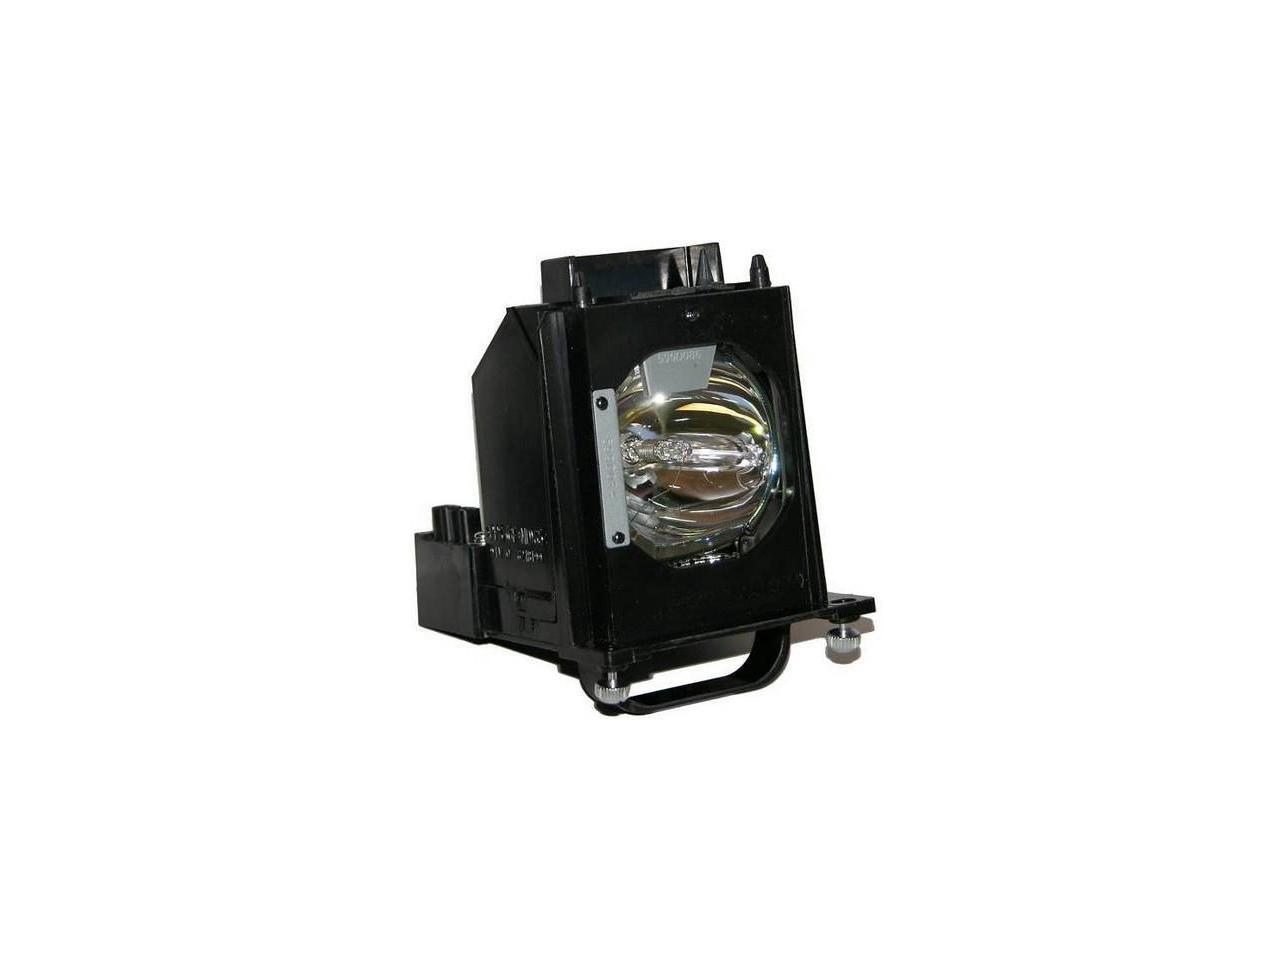 Power by Philips Replacement Lamp Assembly with Genuine Original OEM Bulb Inside for Eiki EK-501W Projector